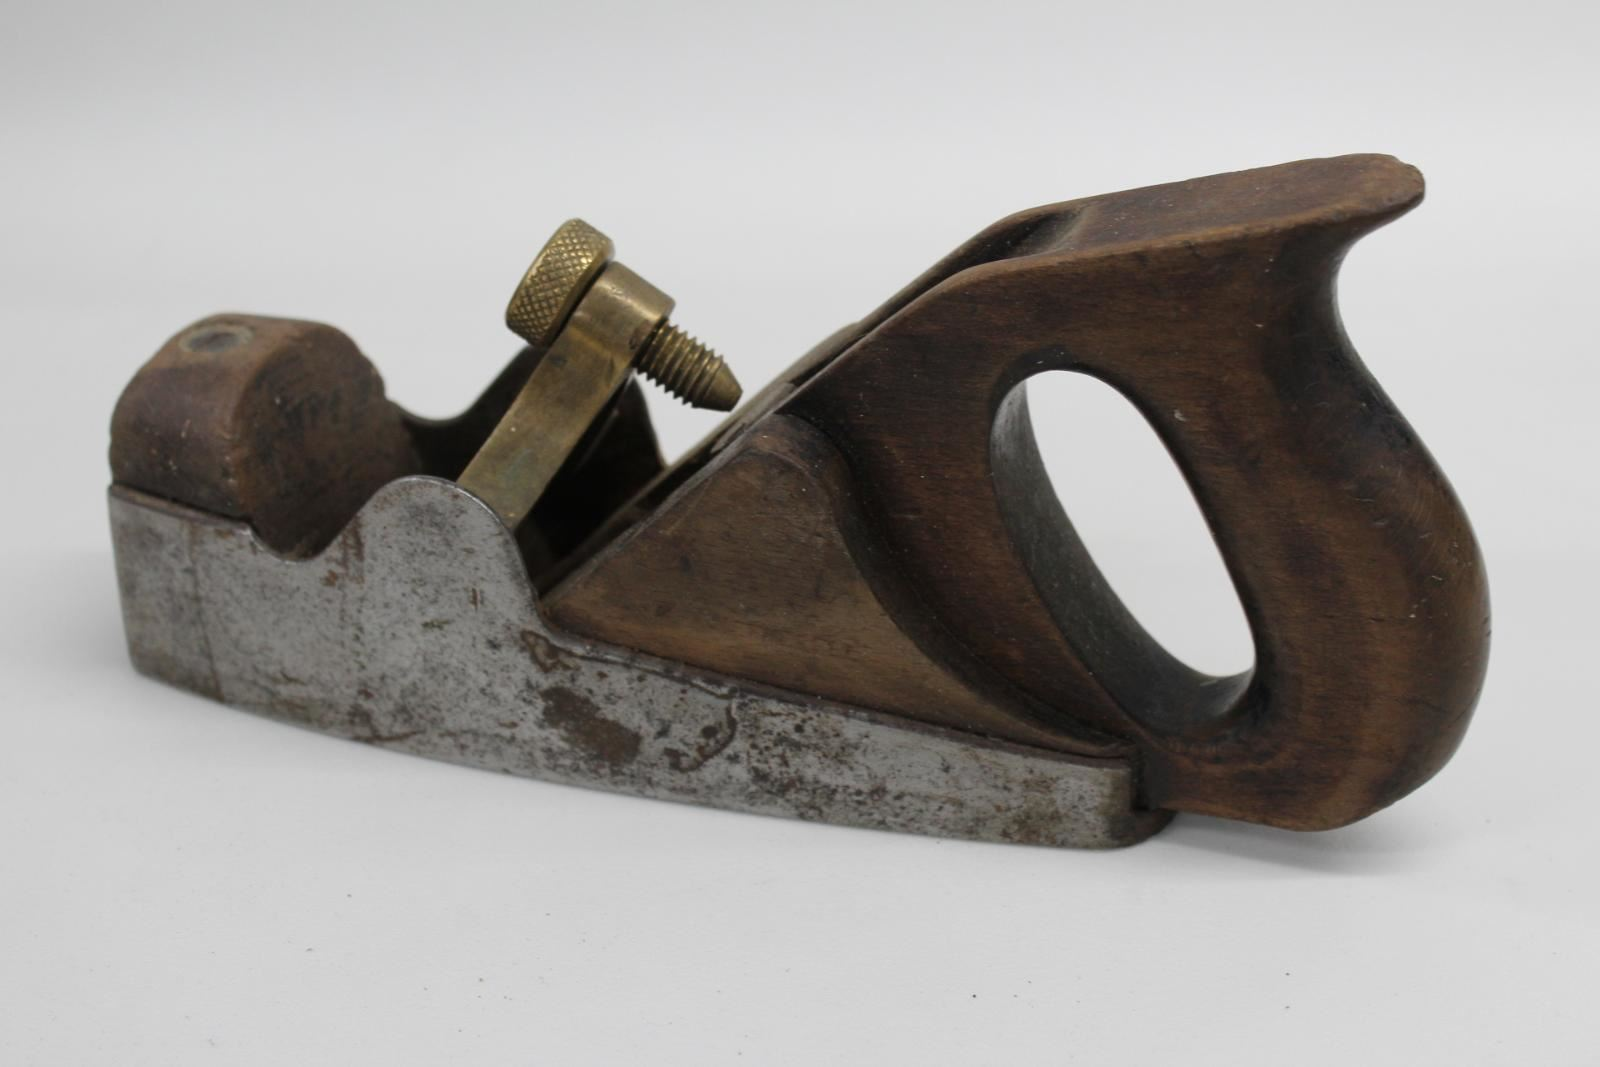 NORRIS LONDON Antique Smoothing Plane Tool Sole 19.5cm Rosewood Collectible